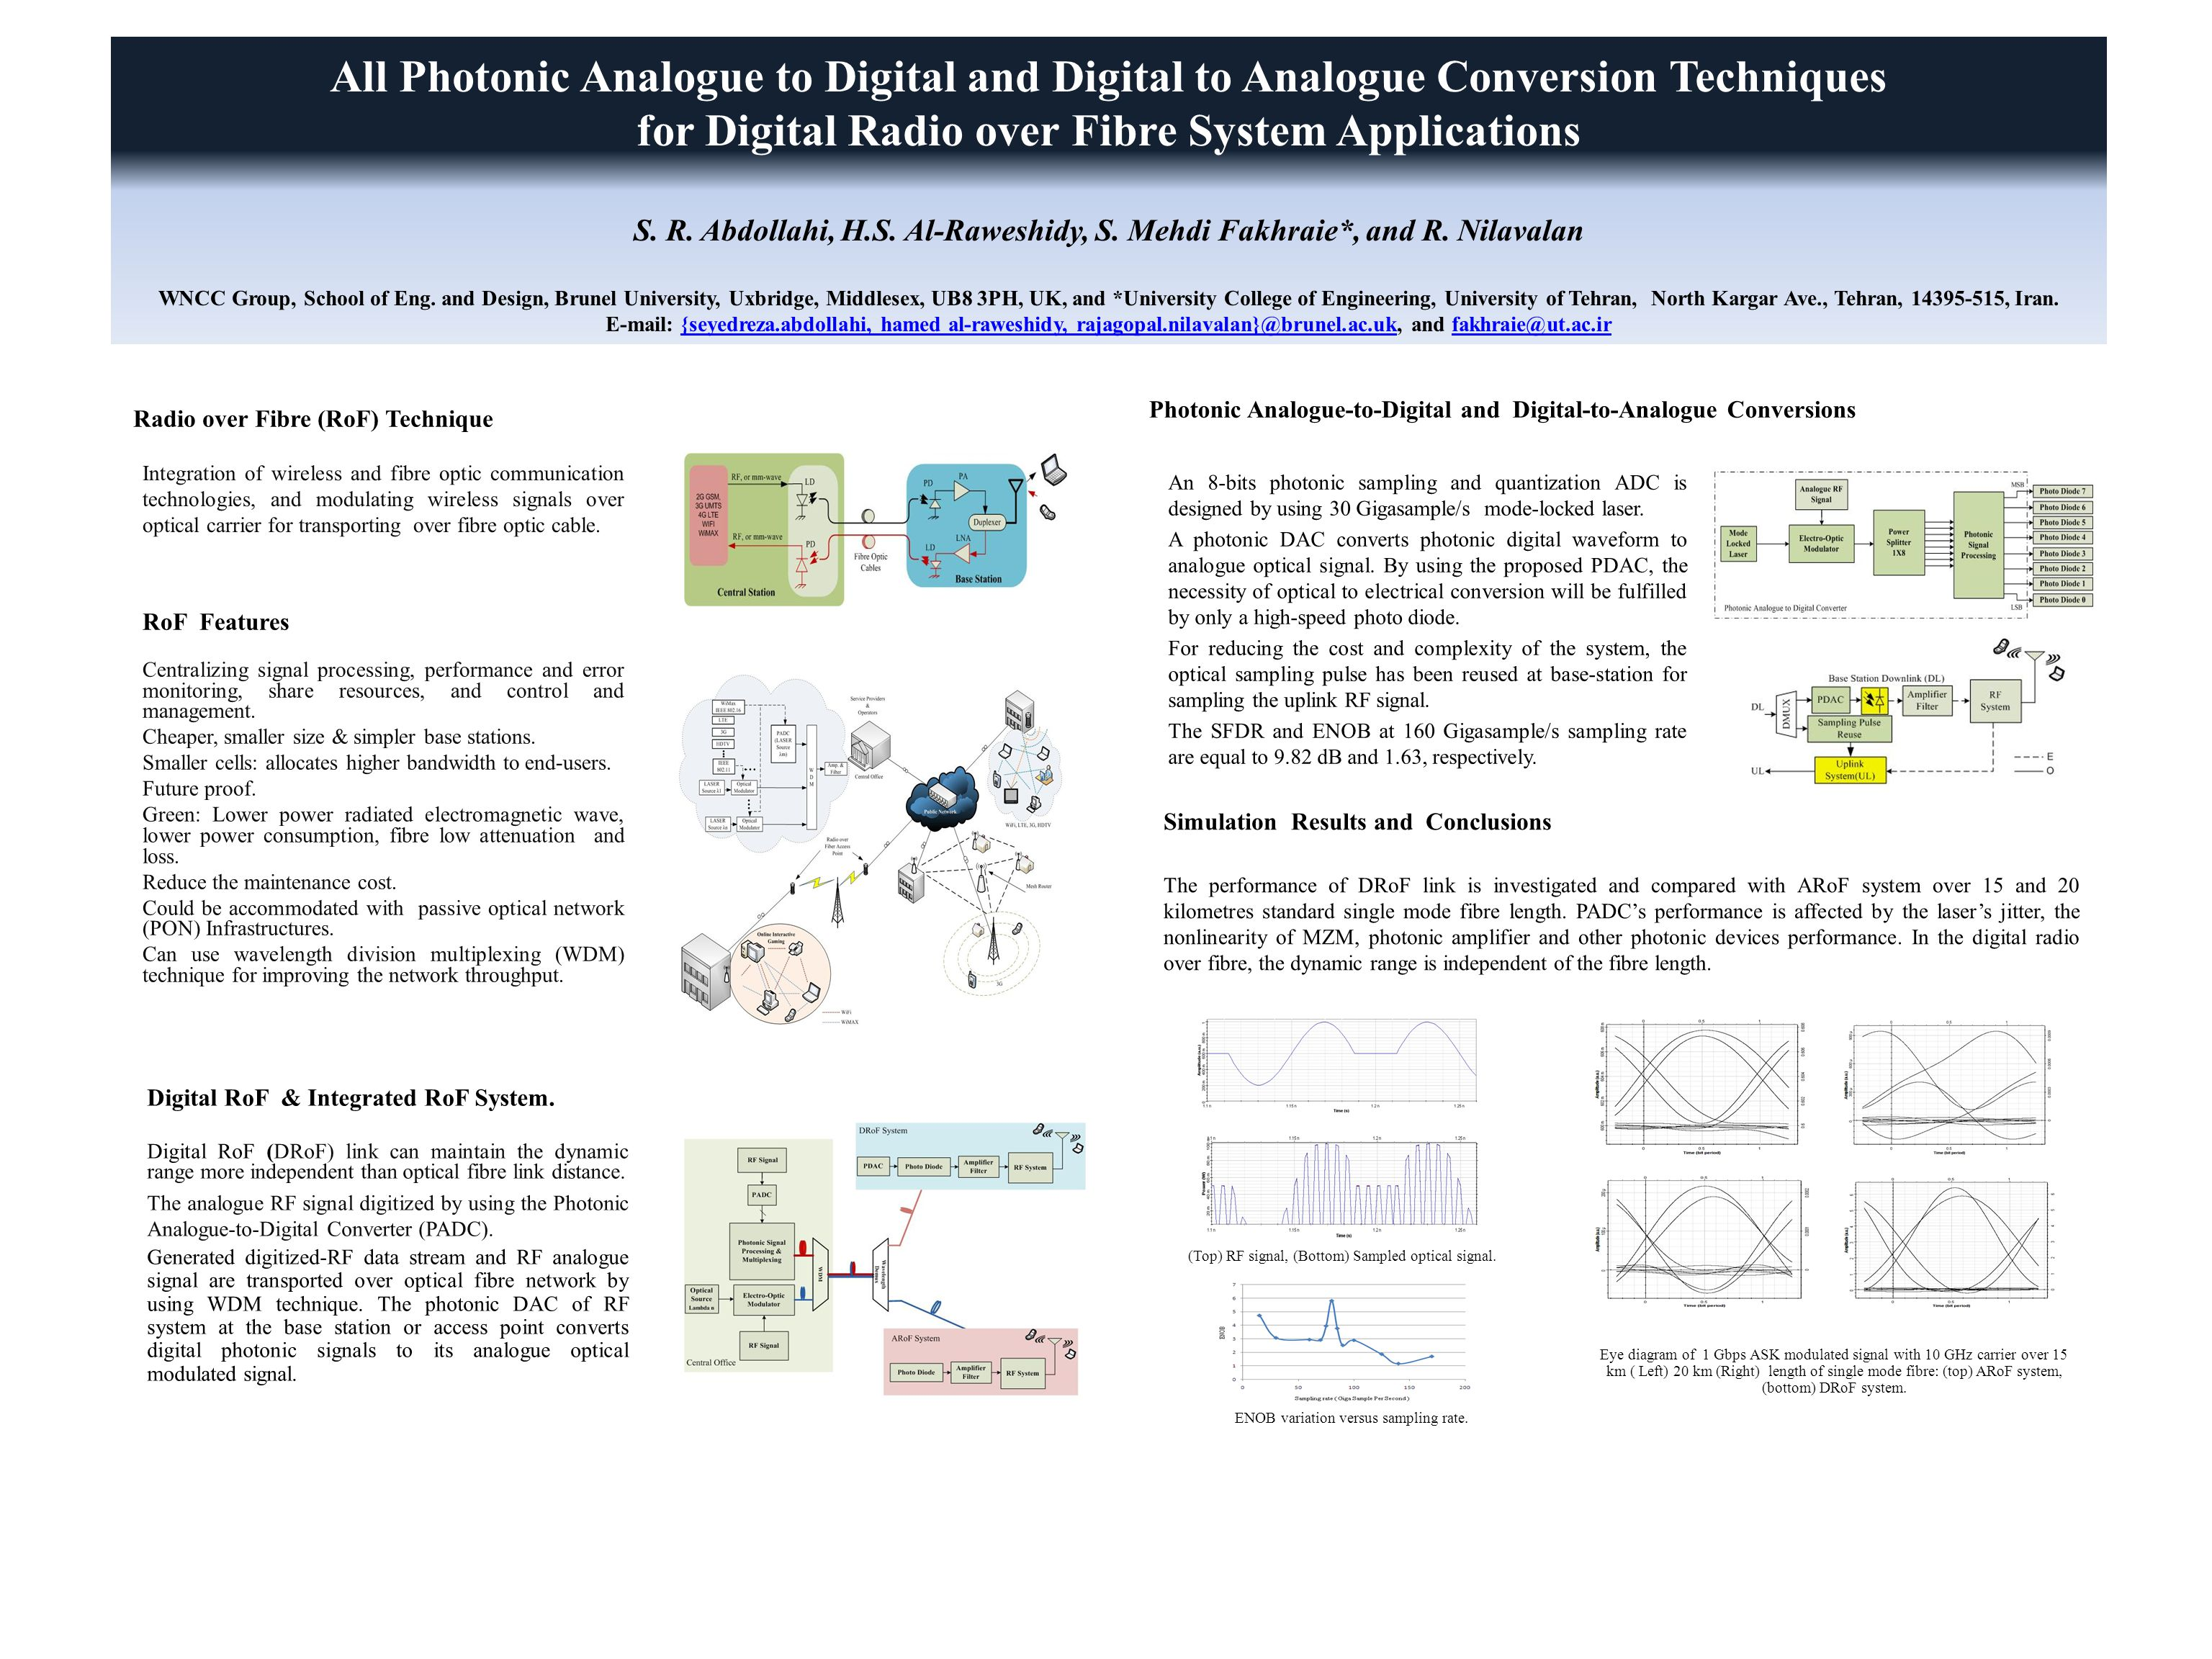 All Photonic Analogue to Digital and Digital to Analogue Conversion Techniques for Digital Radio over Fibre System Applications S.